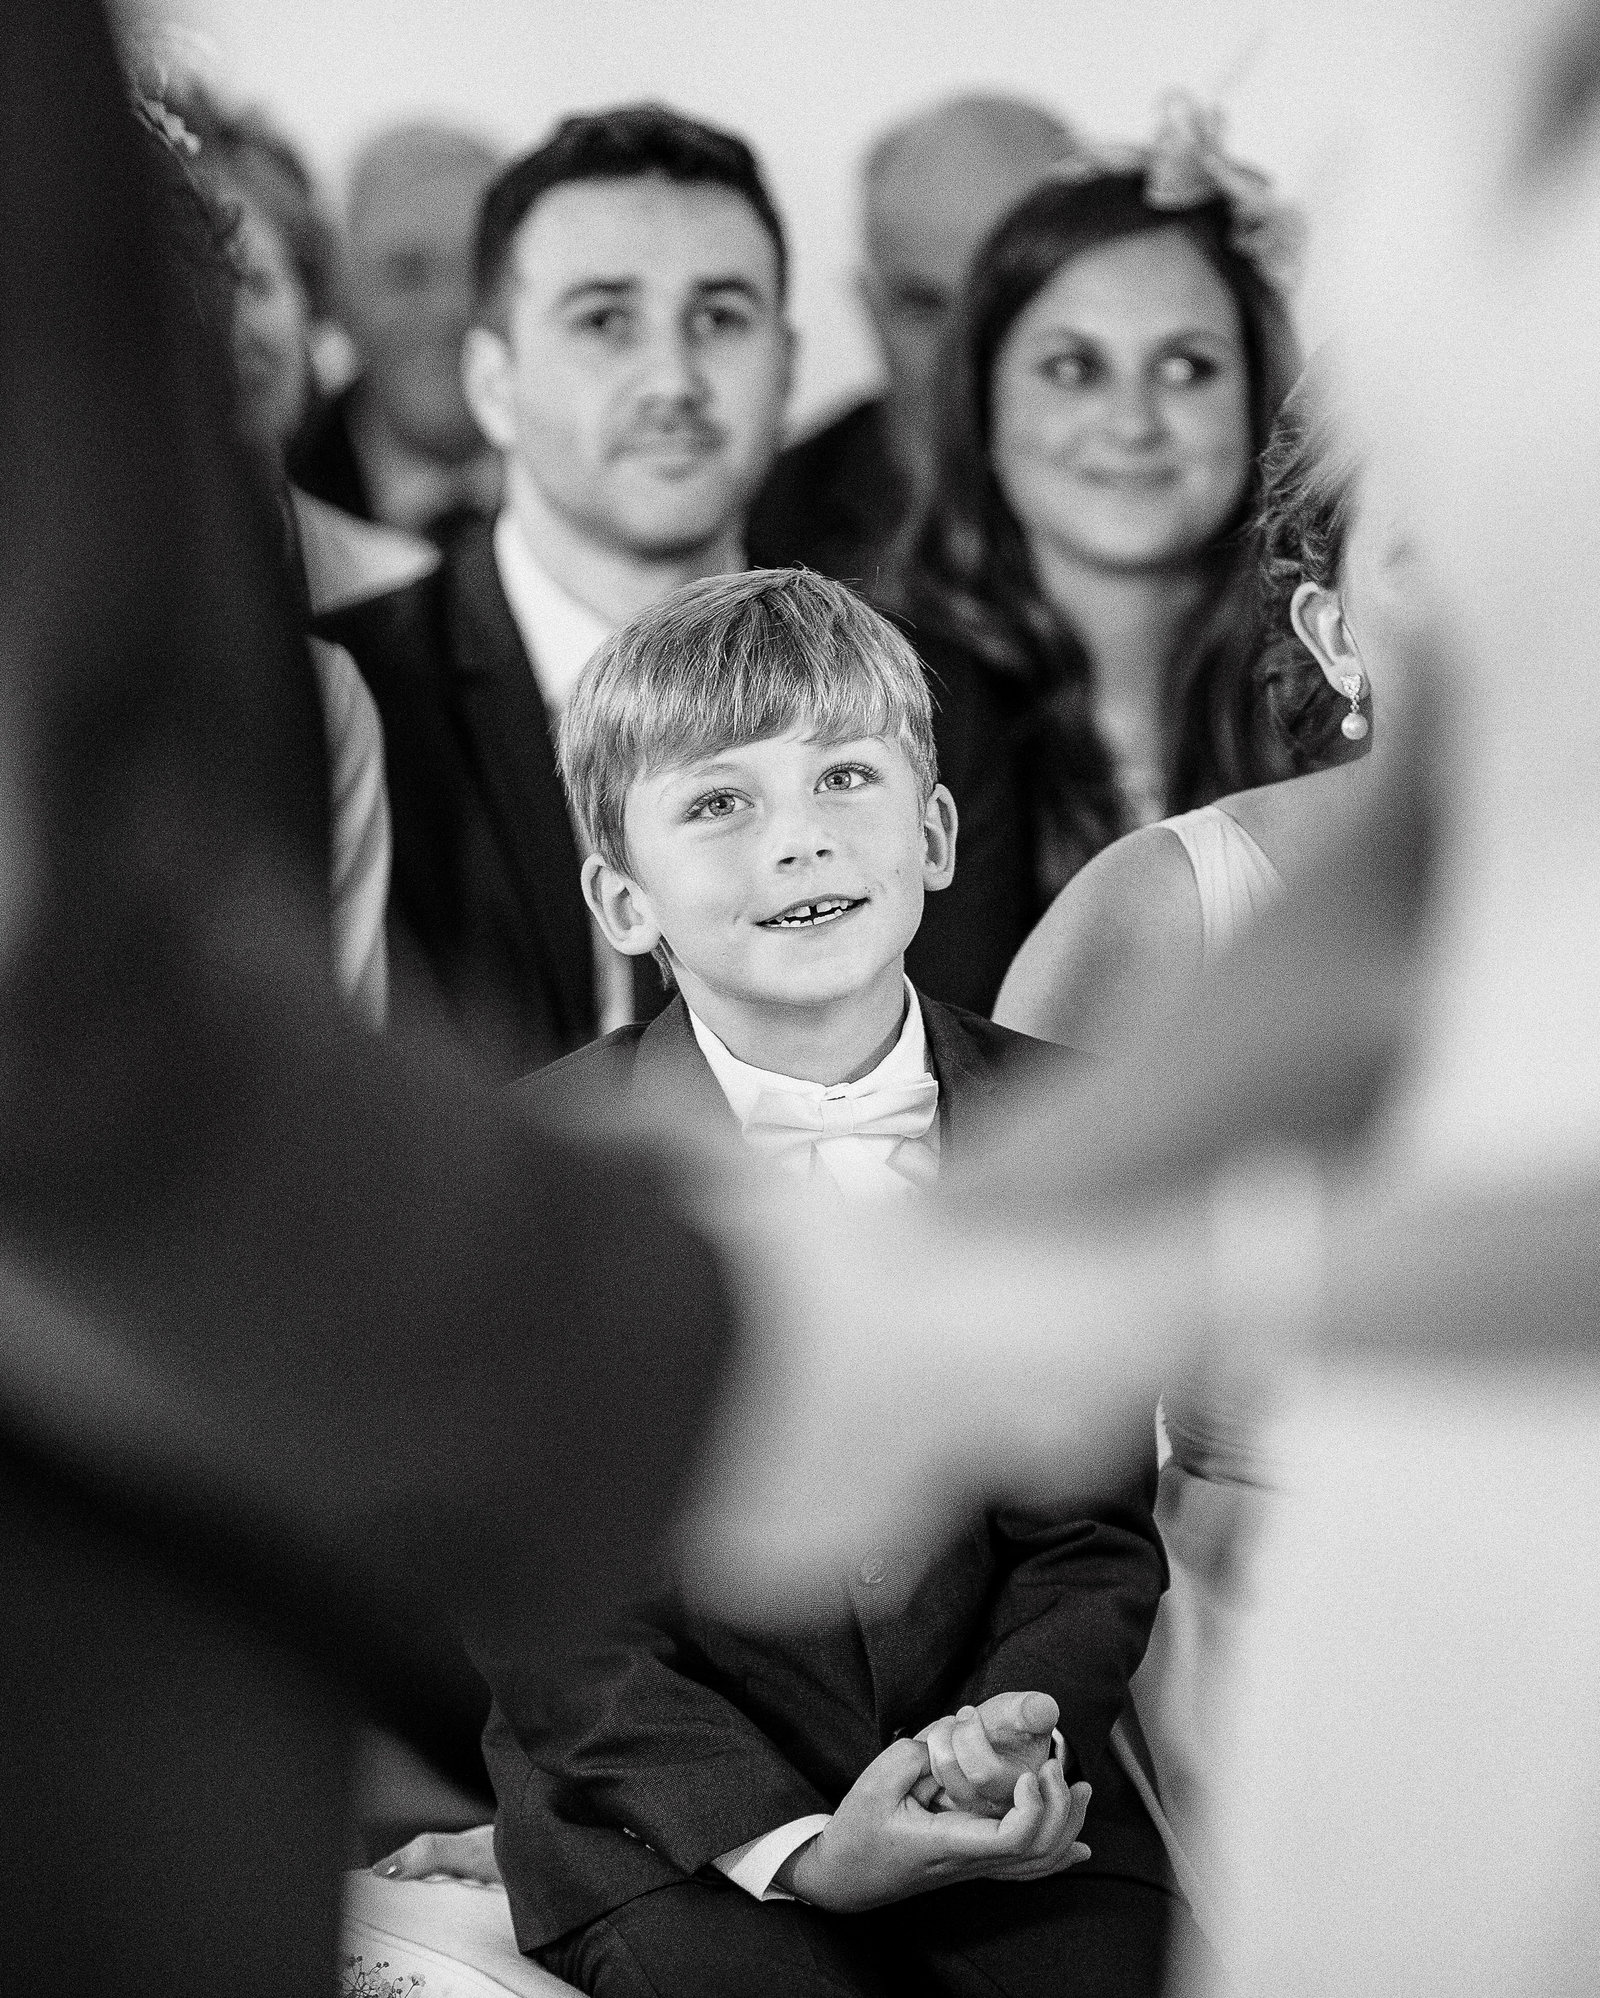 adorlee-0543-southend-barns-wedding-photographer-chichester-west-sussex